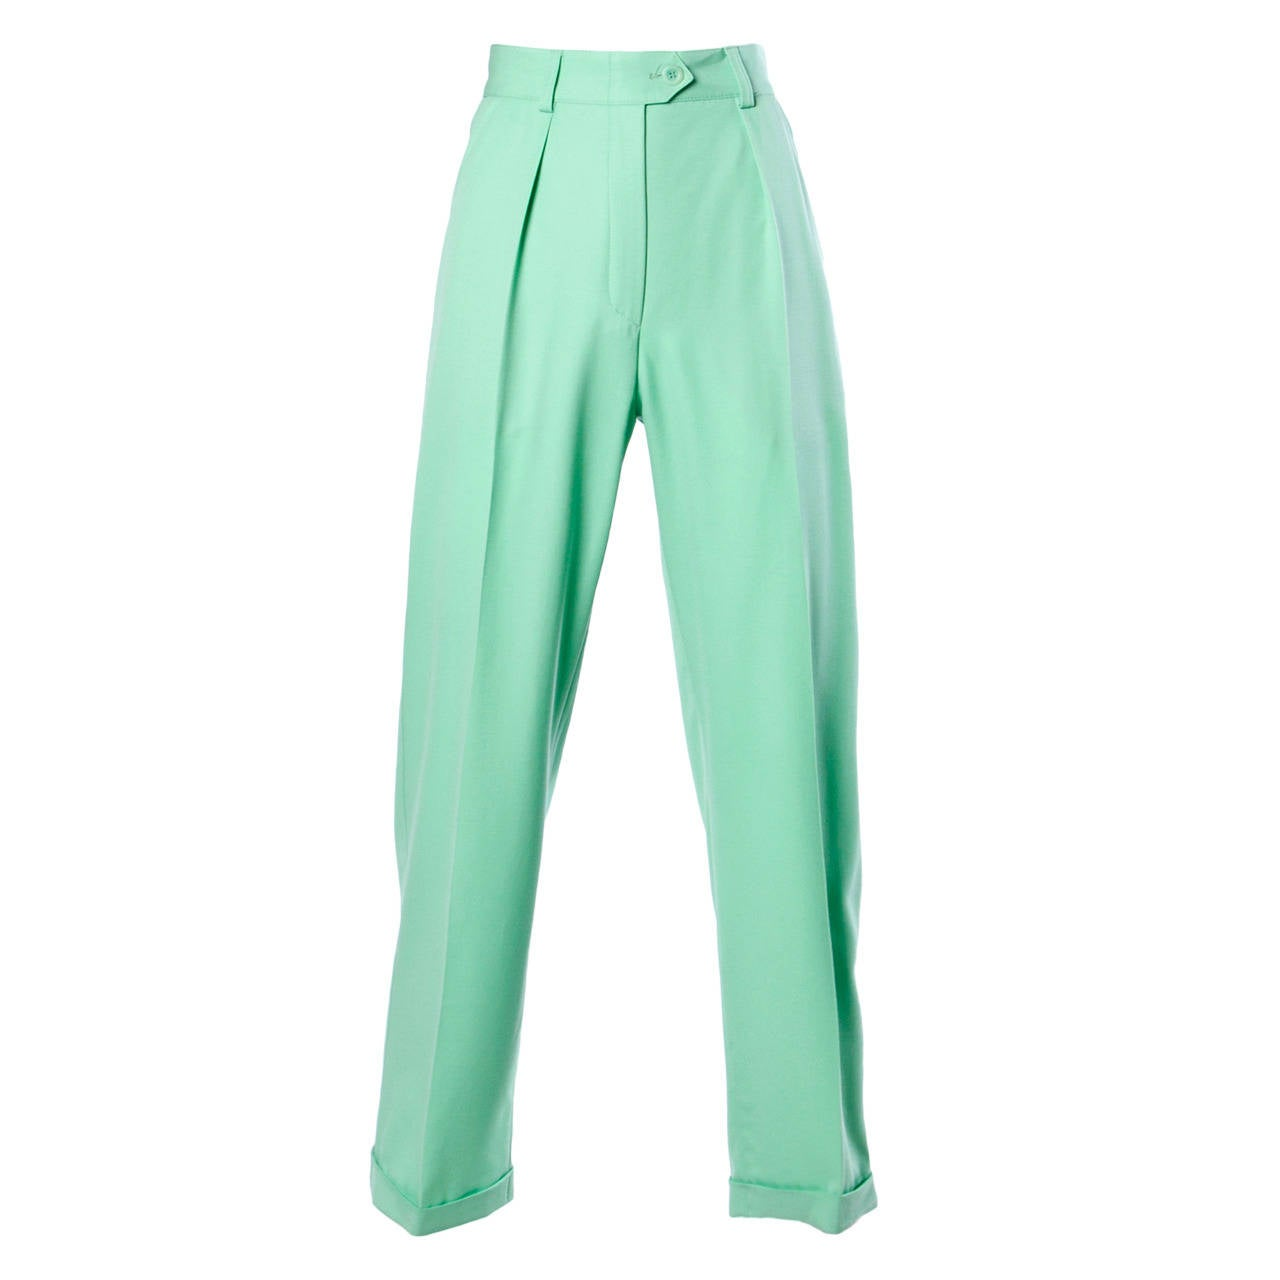 Escada Vintage 1990s 90s Mint Green High Waisted Wool Trousers